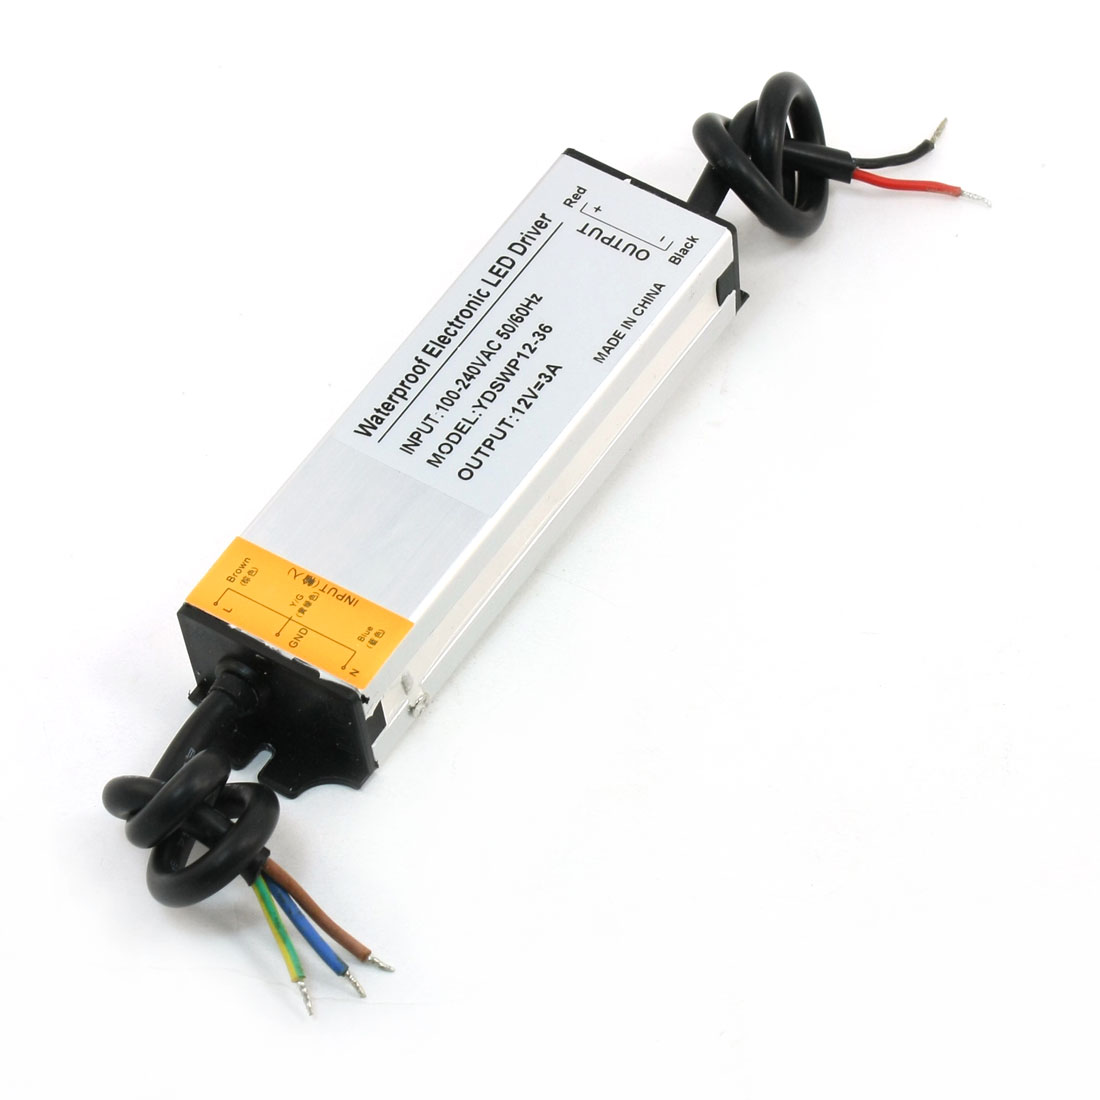 DC 12V 3A Waterproof LED Driver Power Supply Adapter Transformer